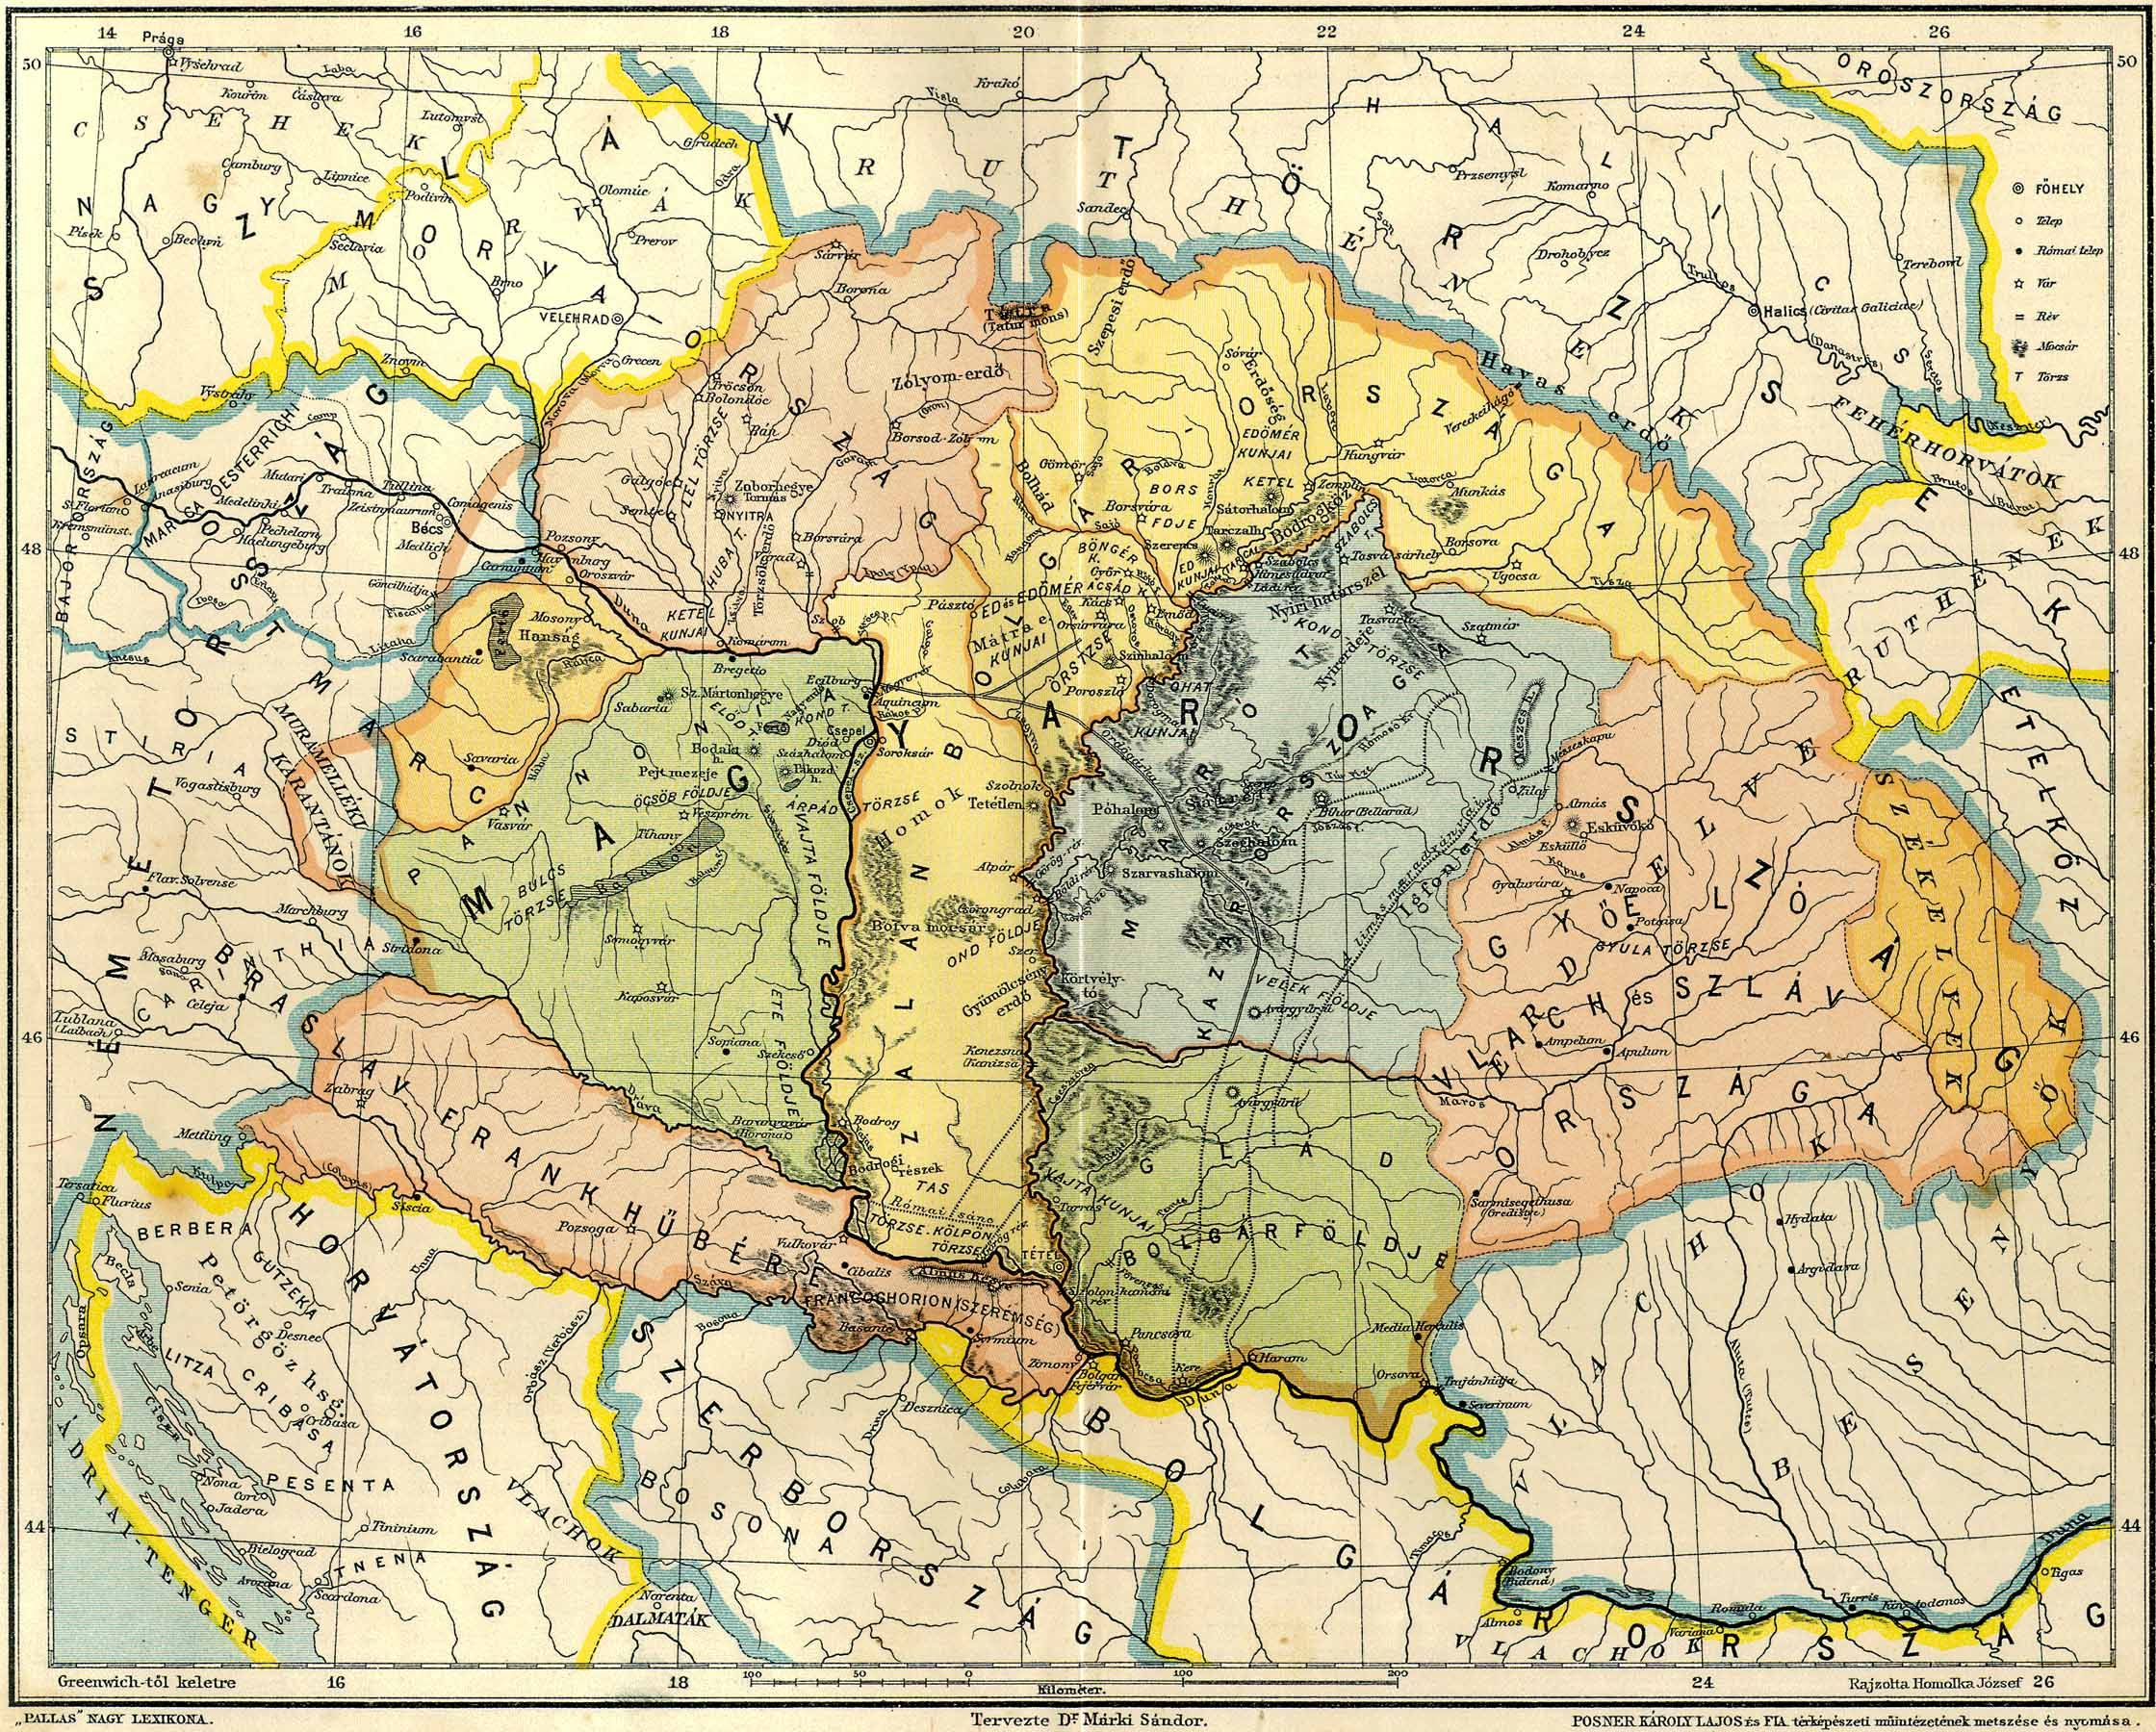 a history of lithuania in the high middle ages The middle ages is the middle period of the three traditional divisions of western history: antiquity, medieval period, and modern period the medieval period is itself subdivided into the early, the high, and the late middle ages.